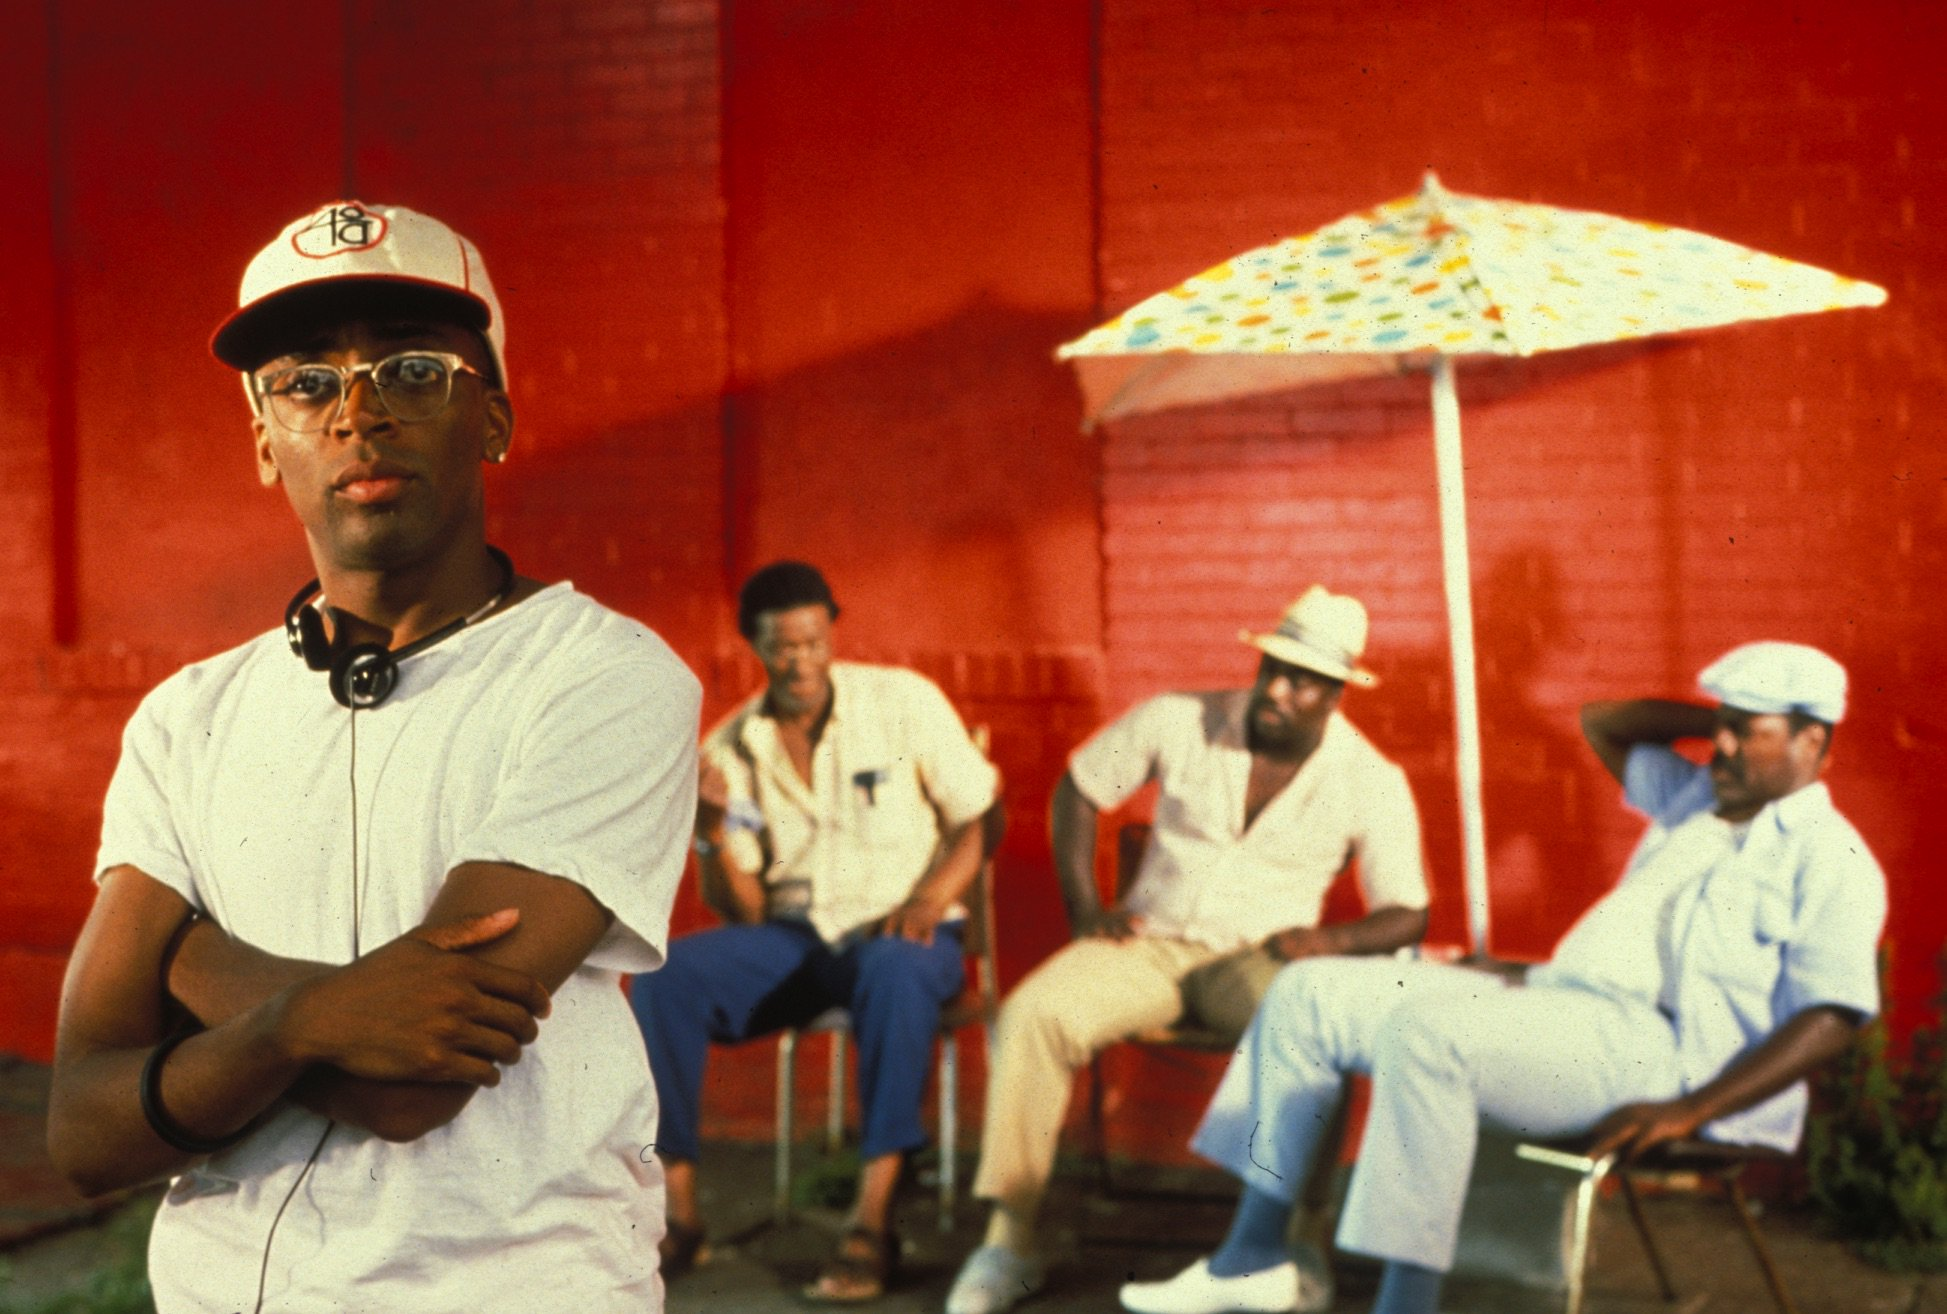 Happy 60th birthday, Spike Lee! Here he is on the set of DO THE RIGHT THING (1989):